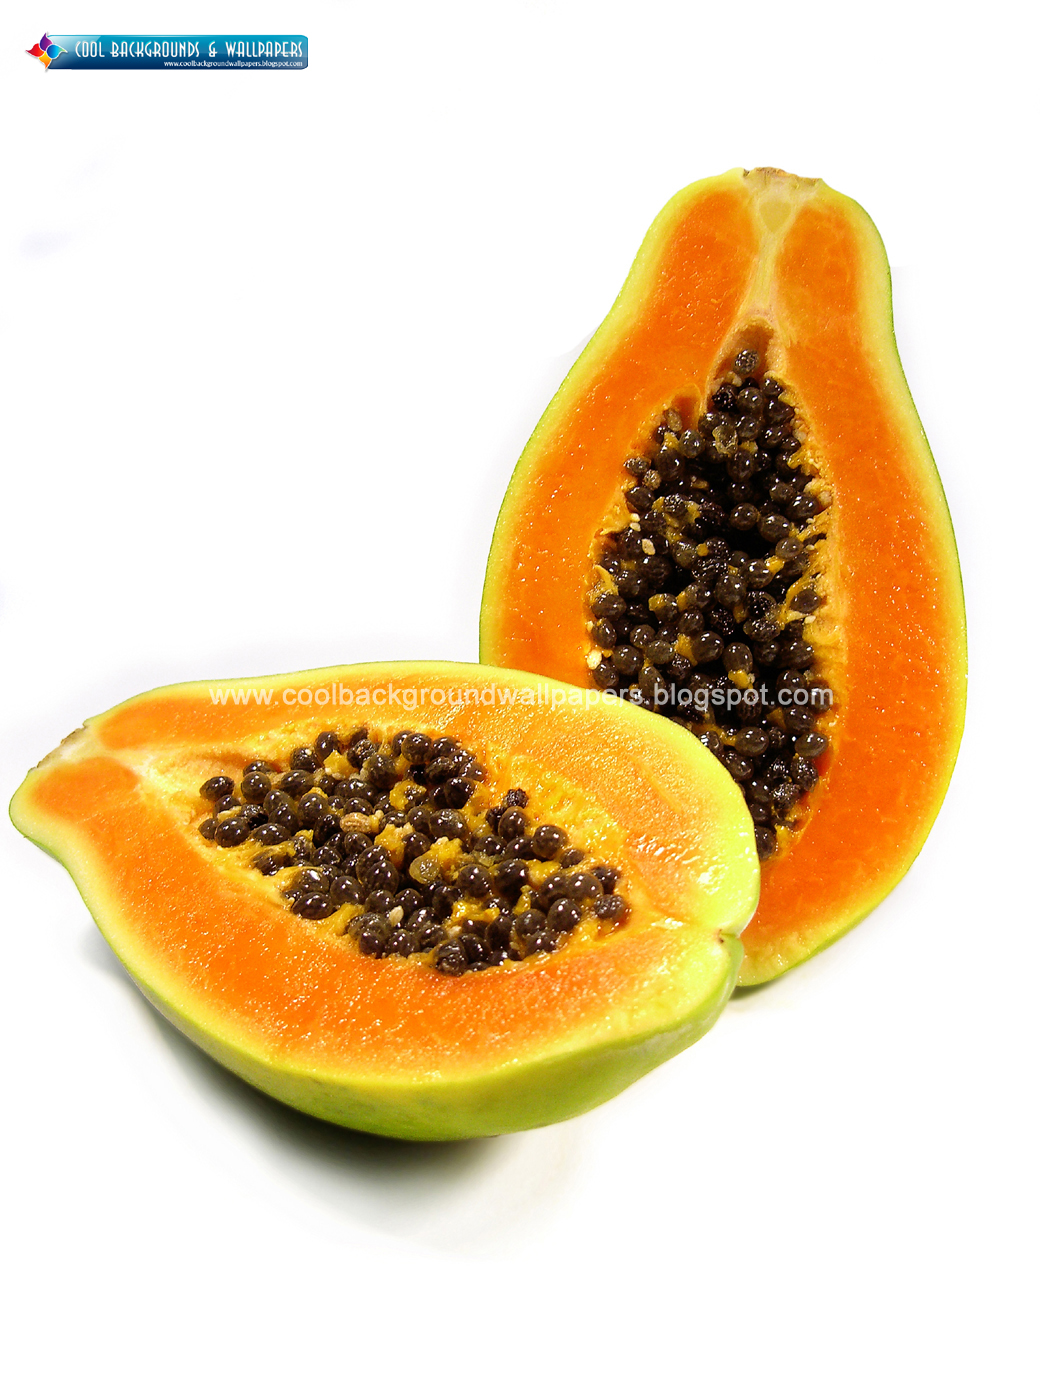 qq wallpapers papaya hq stock images